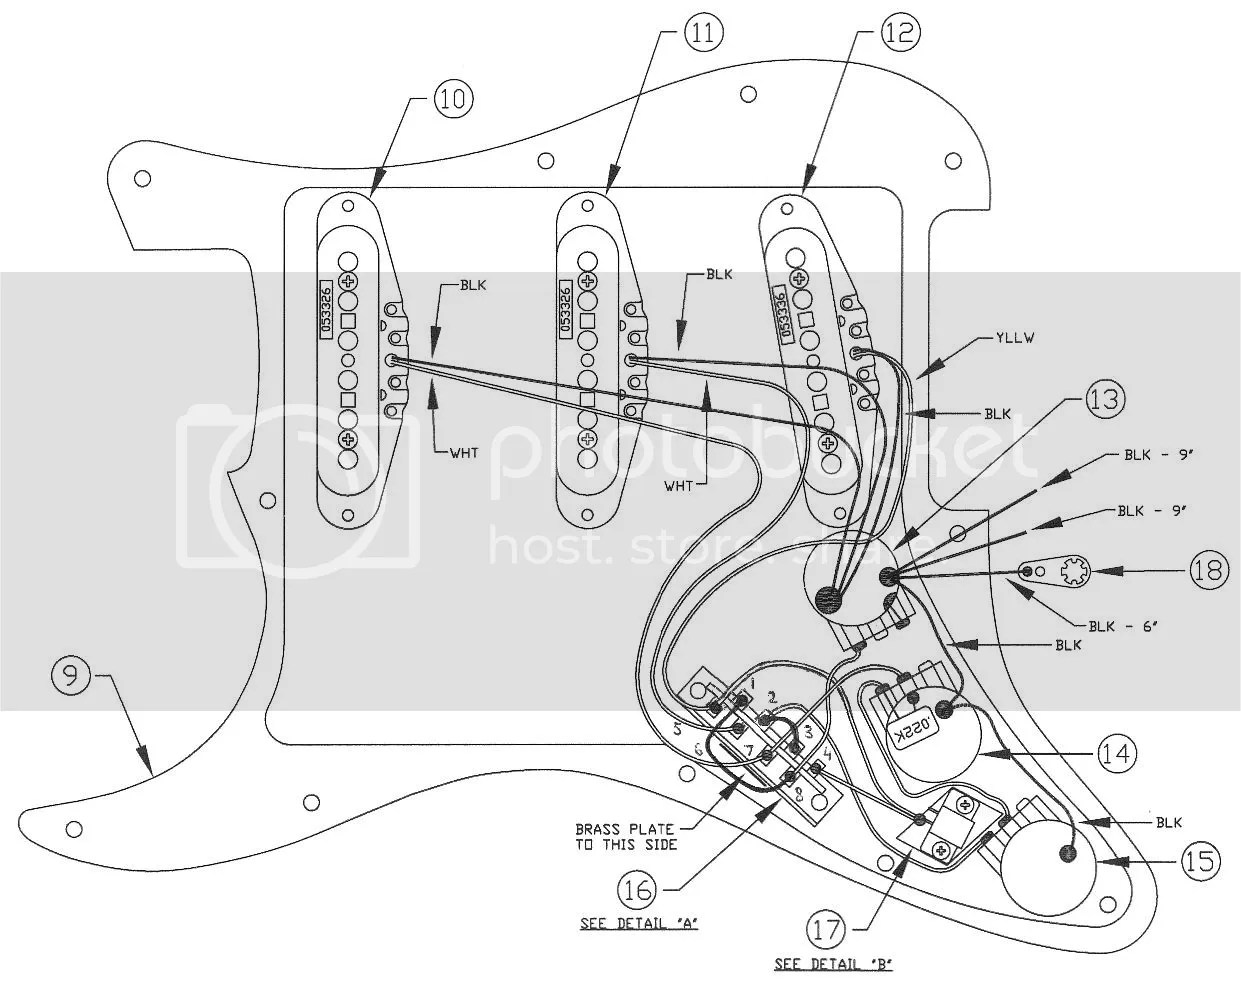 hight resolution of fender deluxe players strat wiring diagram wiring diagrams custom shop stratocaster diagram mexican strat wiring diagram